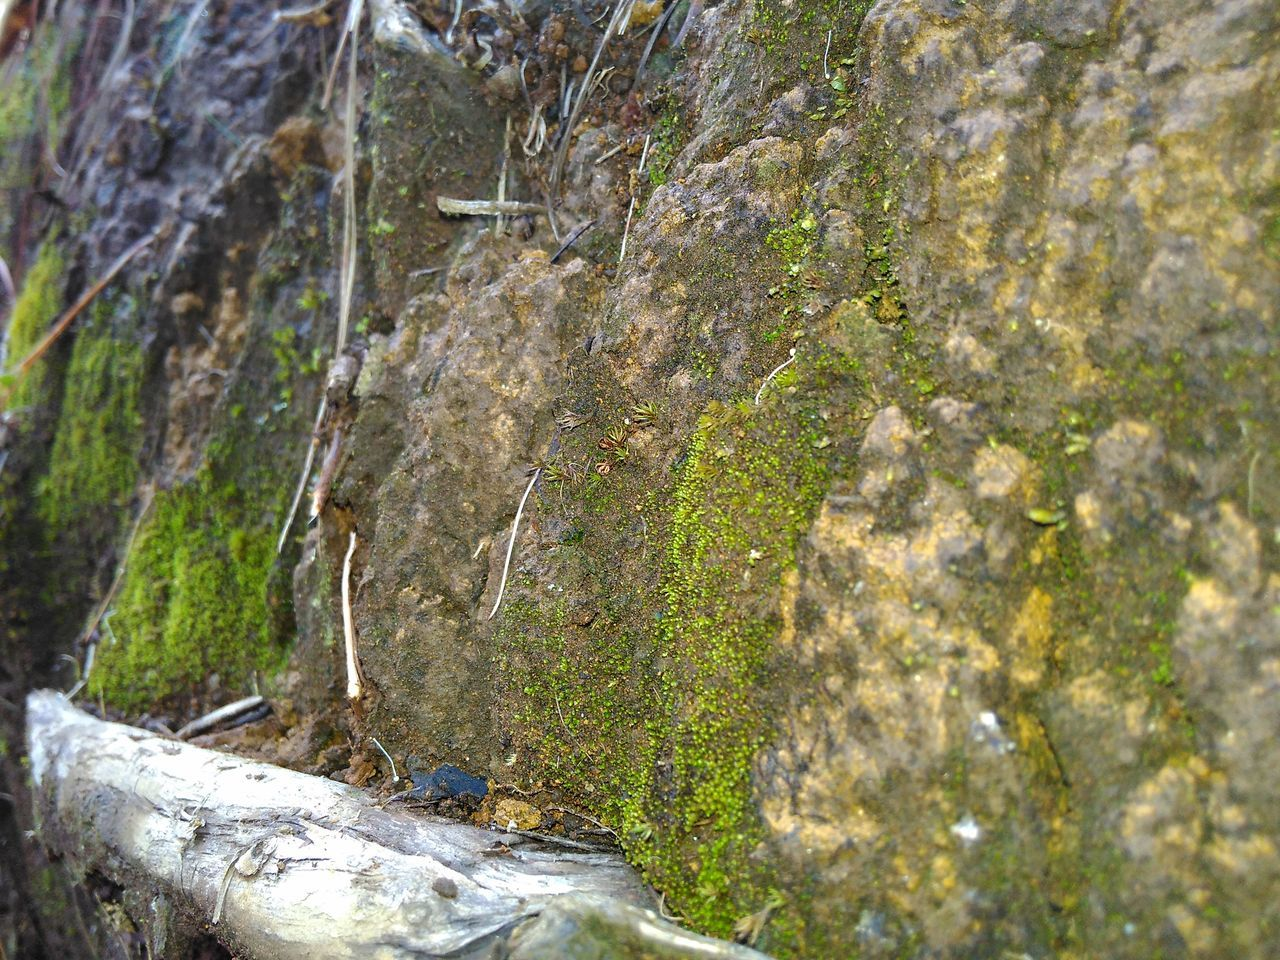 moss, rock - object, no people, nature, tree trunk, outdoors, day, forest, tranquility, lichen, tree, beauty in nature, close-up, grass, freshness